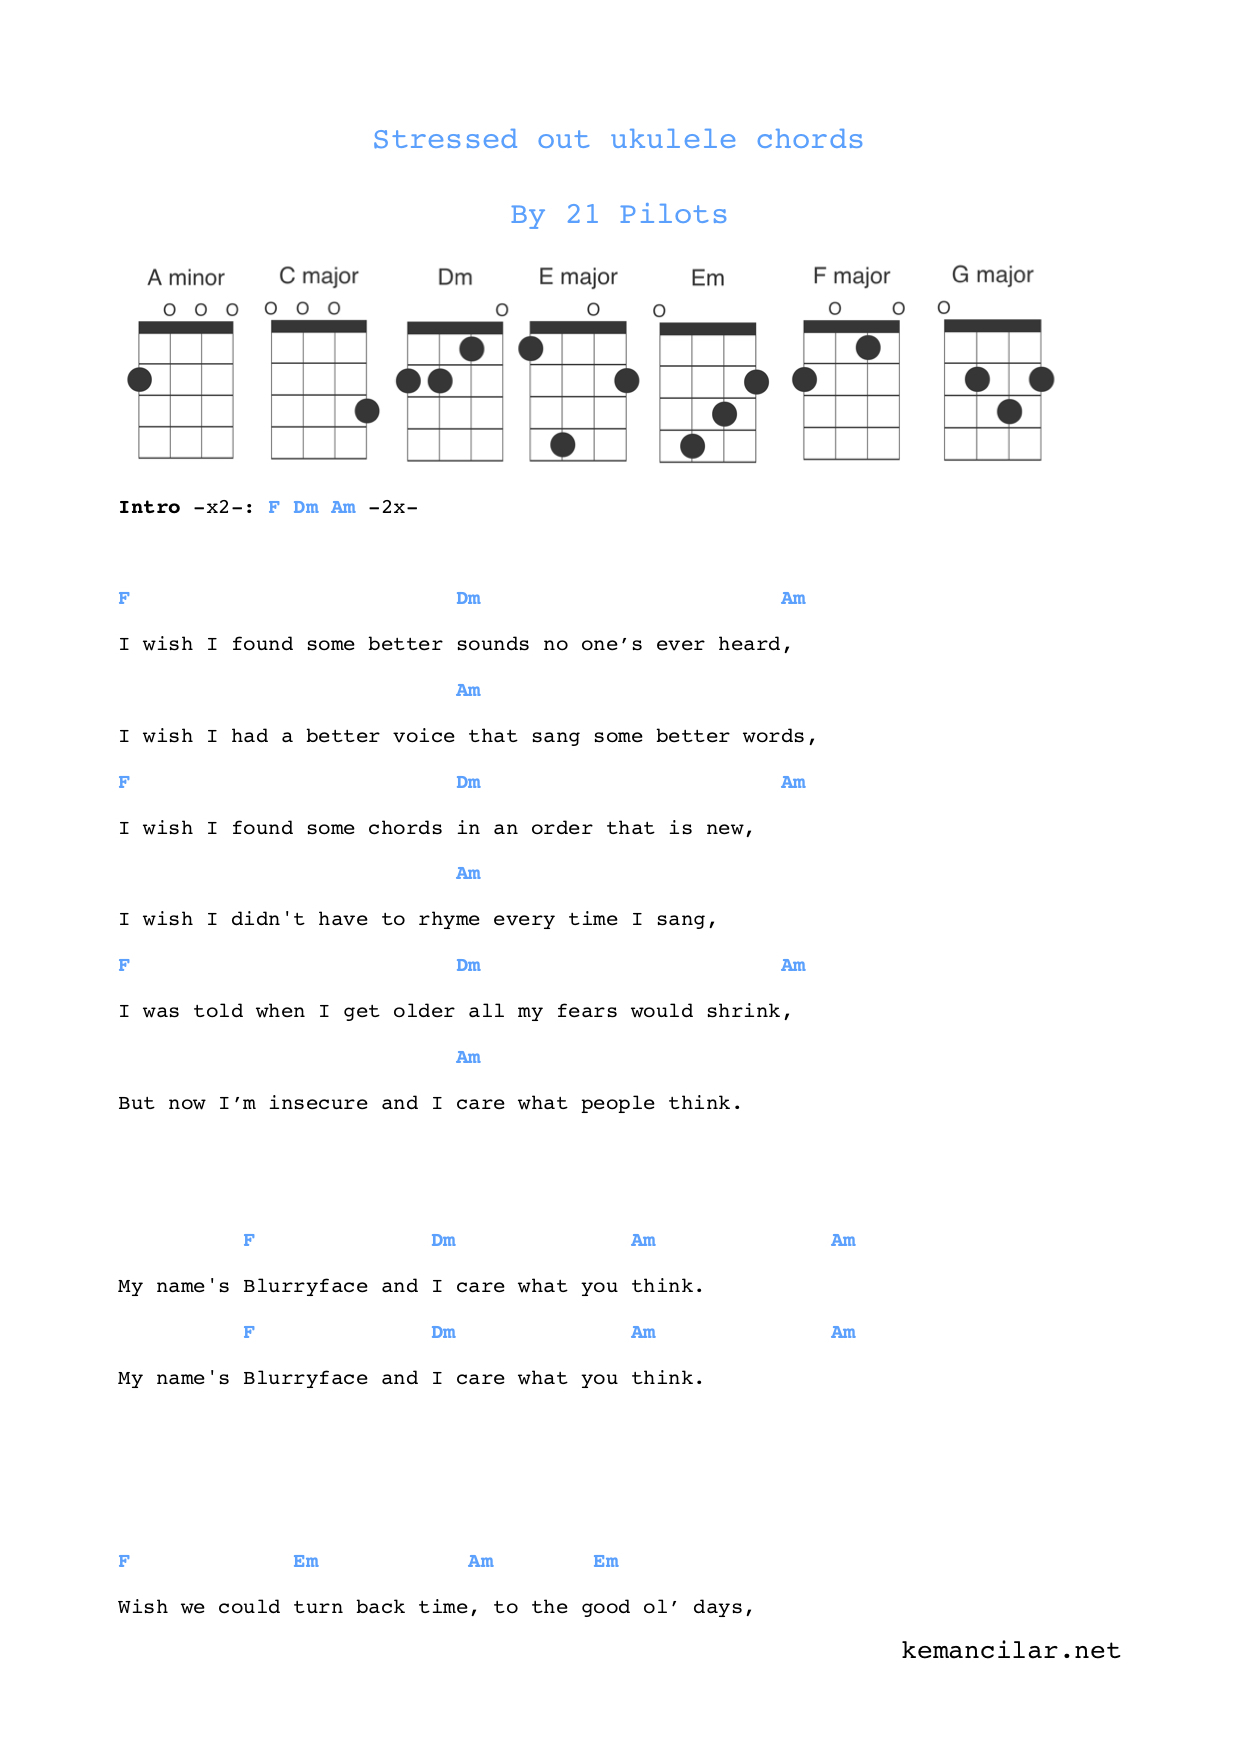 Twenty One Pilots Ukulele Chords Stressed Out Ukulele Chords Free Sheet Music